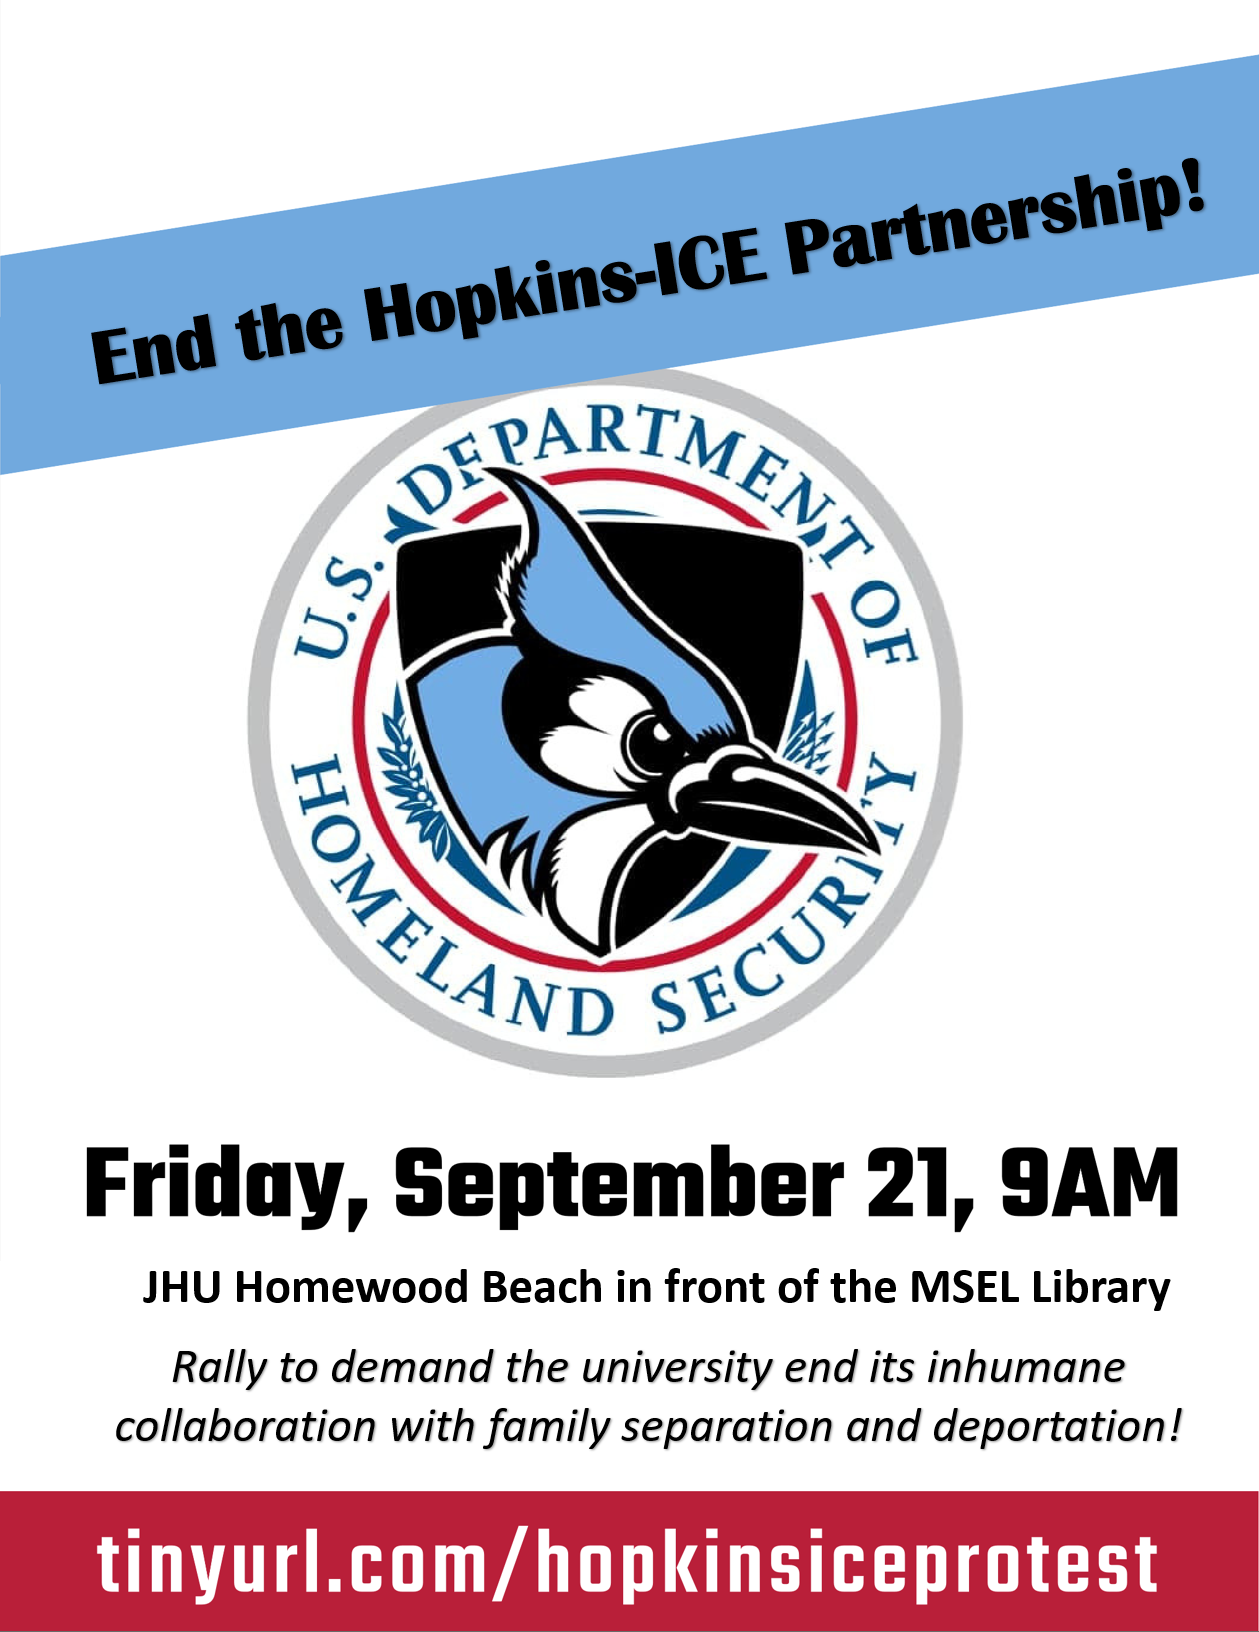 poster callng for a rally to end the hopkins contracts with ICE